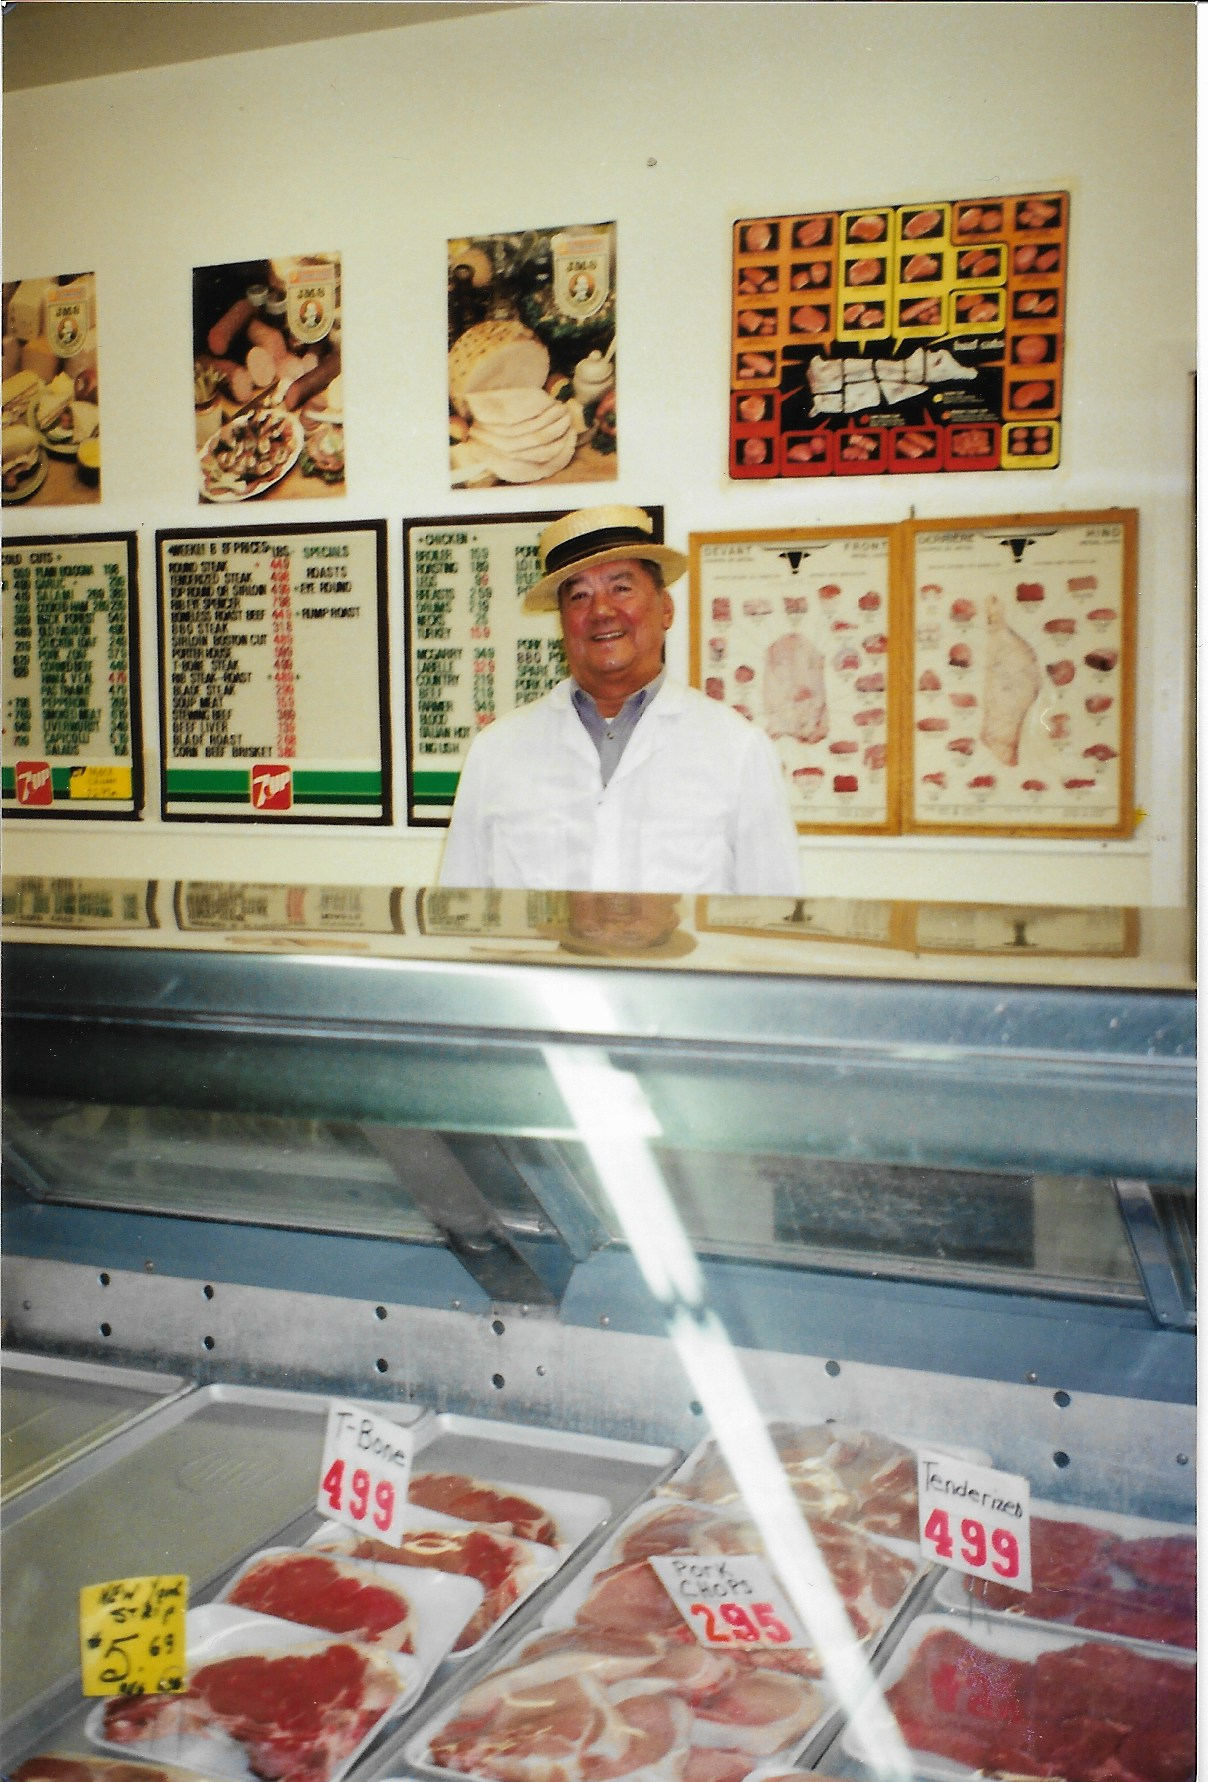 David Lafleur was the second of the Lafleur butcher dynasty that now includes his granddaughter Kiersten, who just opened a meat deli on Route 207 with husband Jay Diabo (Courtesy Kiersten Lafleur-Diabo)